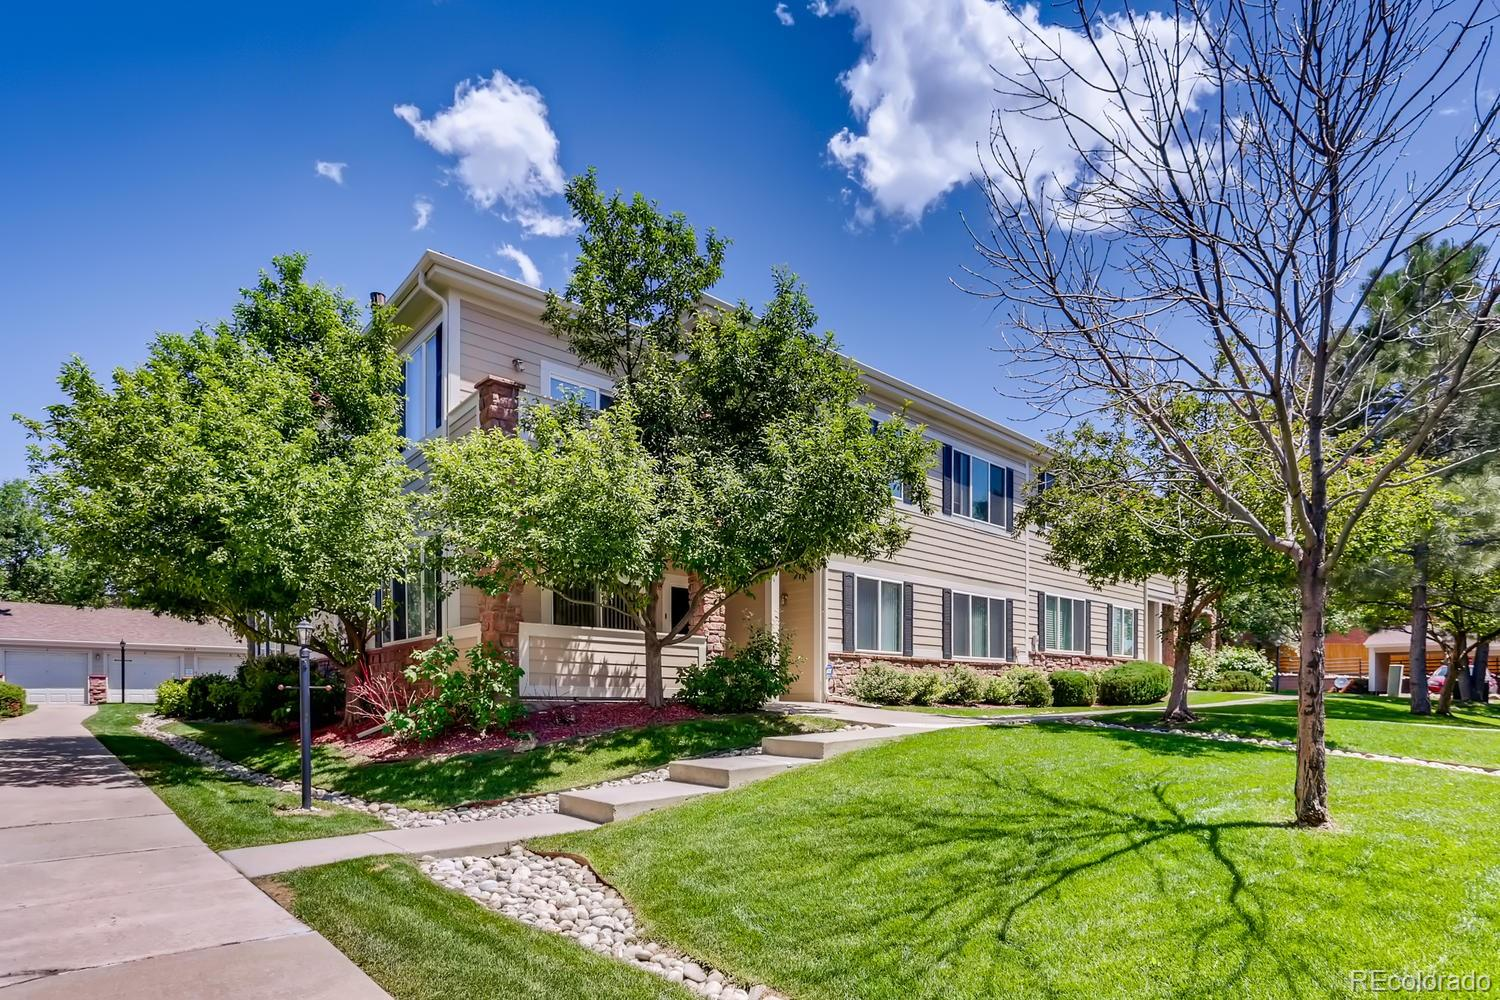 Oh how sweet it is, is this charming 2 bedroom, 2 bath condo in Silver Ridge. These homes don't come up often and it's certain not to last long! You won't be disappointed with the 1120 square feet of space that offers up open concept living, the cutest 2 sided fireplace there ever was and tile floors throughout the main living areas. The kitchen with it's beautiful wood-look tile even has a *brand new refrigerator*.  Down the hall you'll pass the laundry area which *includes* the washer and dryer, the secondary bedroom with *BRAND NEW CARPET* and a full bath.  Just on the other side of that is the spacious primary bedroom which also has *BRAND NEW CARPET* a walk-in closet, linen closet and a large full bath.  If that's not enough, there is also a detached one-car garage and a dedicated parking space for the unit.  No windows face parking lots so you can enjoy the green views from your living room, the covered porch and bedrooms during our gorgeous Colorado Summers. When the air turns chilly, snuggle up with the fireplace and watch the snow fall. This is truly a fantastic home and ready for someone to move in and make it their own.  Please note, this complex is not currently approved for FHA-VA to the best of our knowledge.